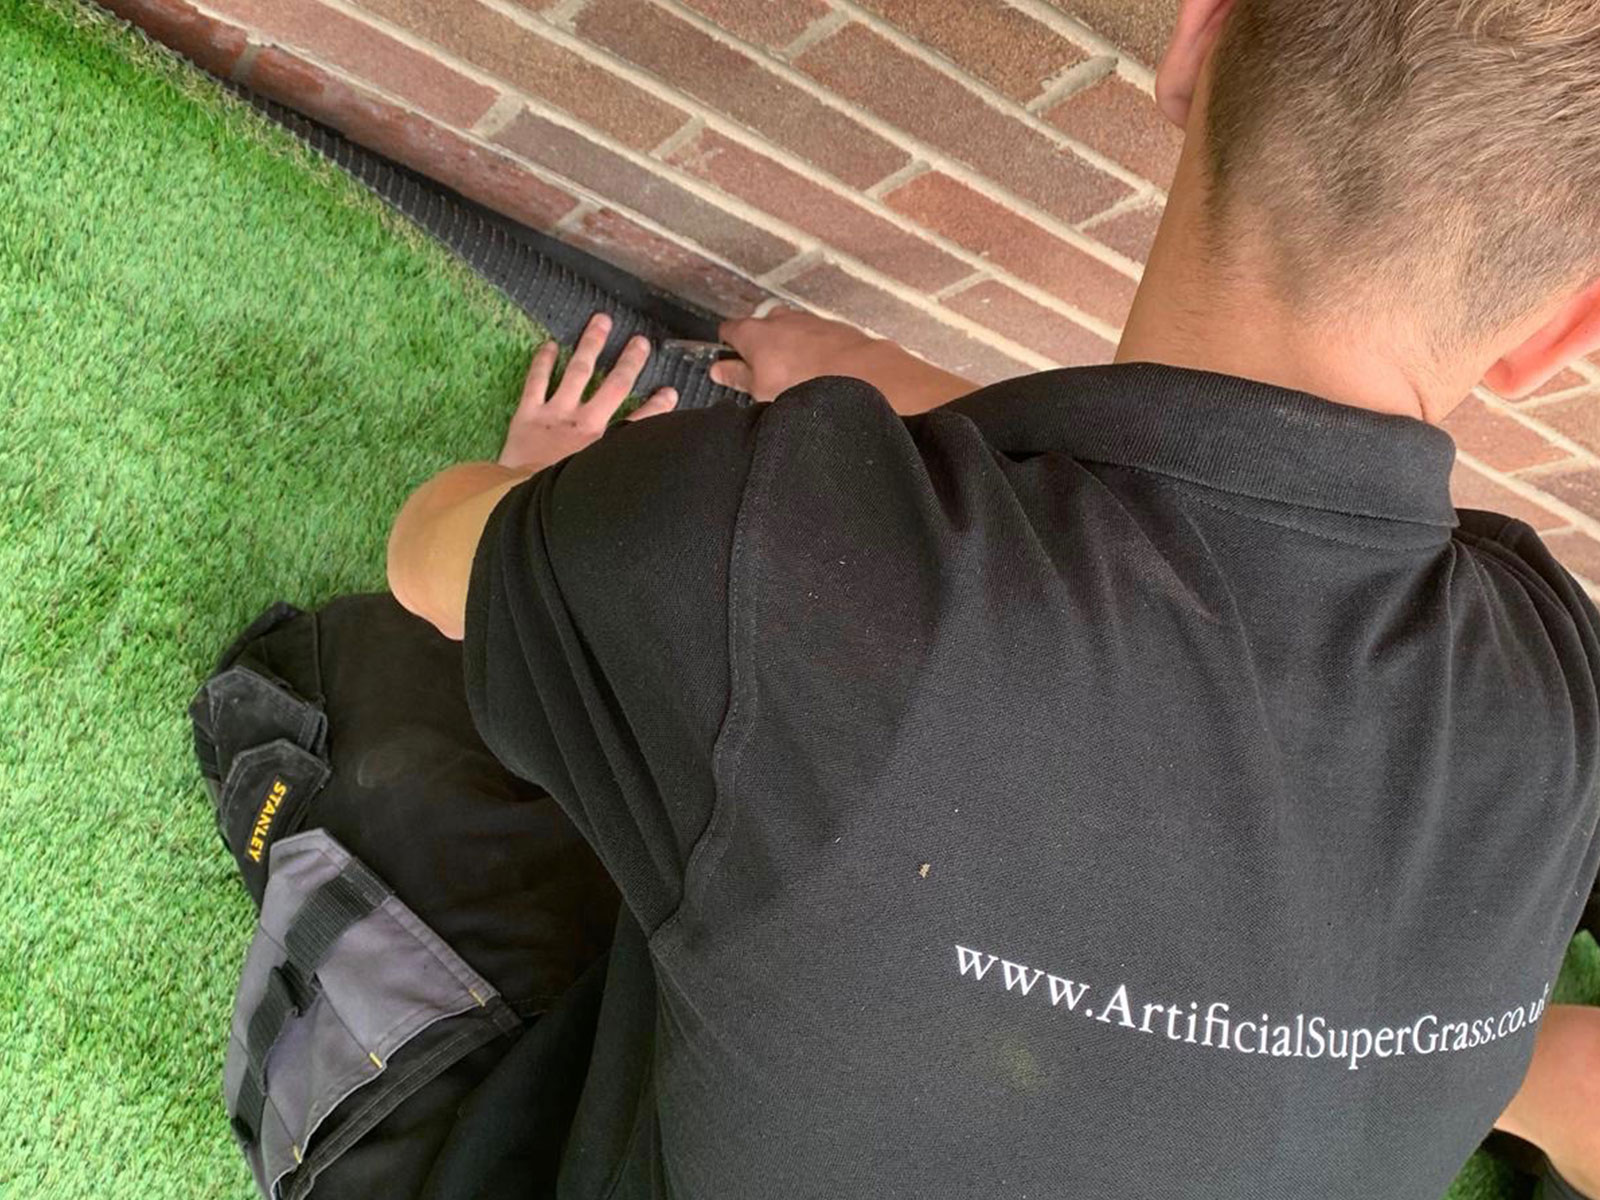 Artificial Lawn Tyne and Wear Artificial Super Grass